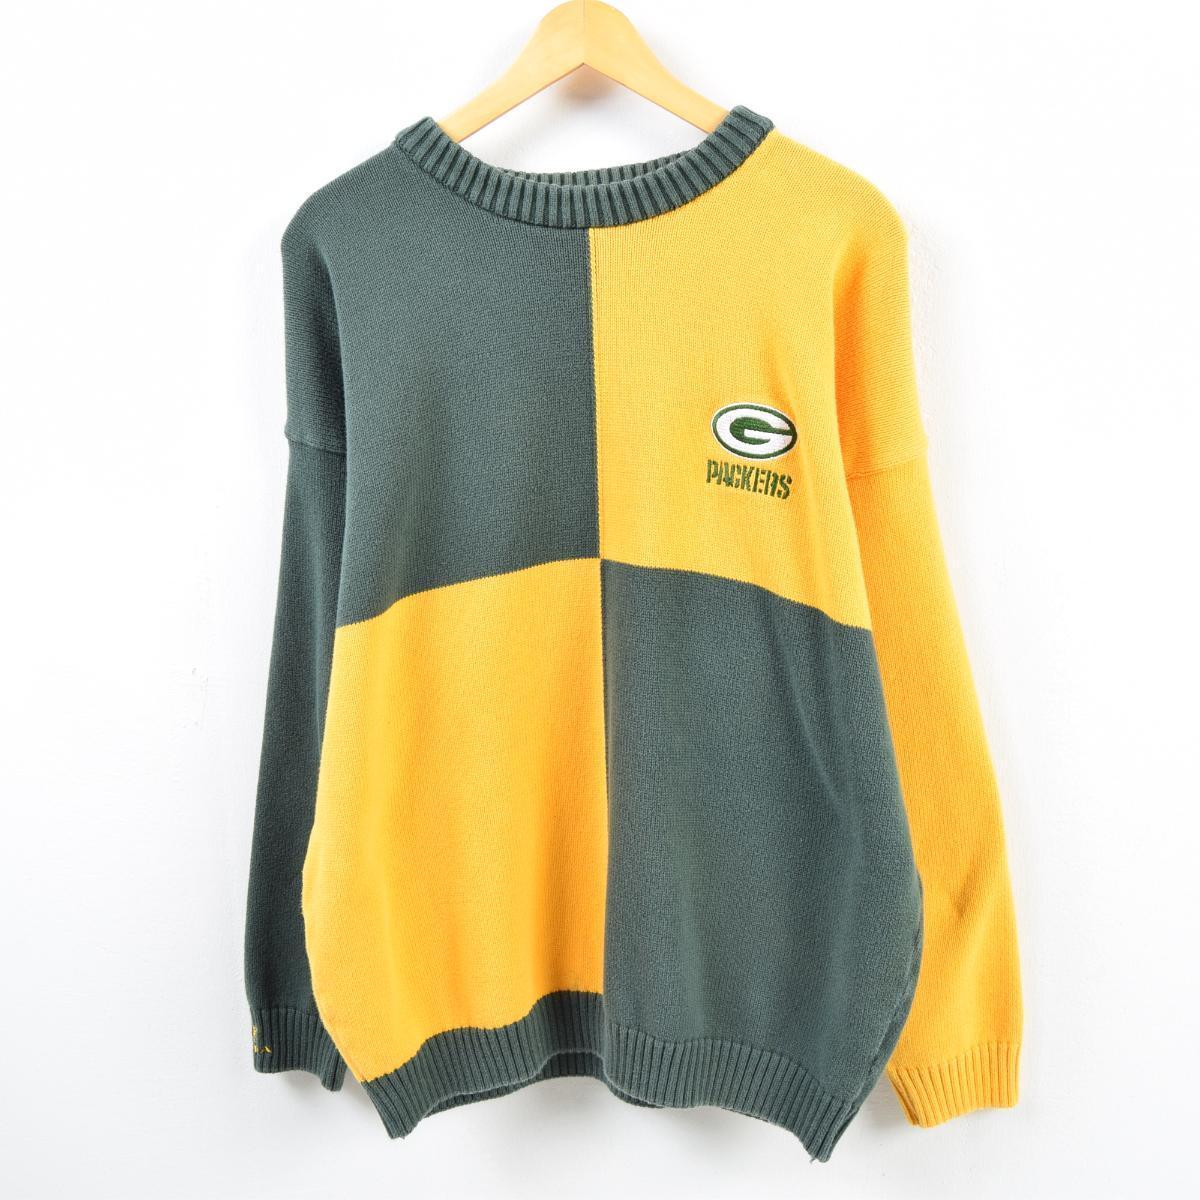 new product 58b49 a7b78 Men L /wbb2832 made in TUNDRA NFL GREENBAY PACKERS Green Bay Packers cotton  knit sweater Canada